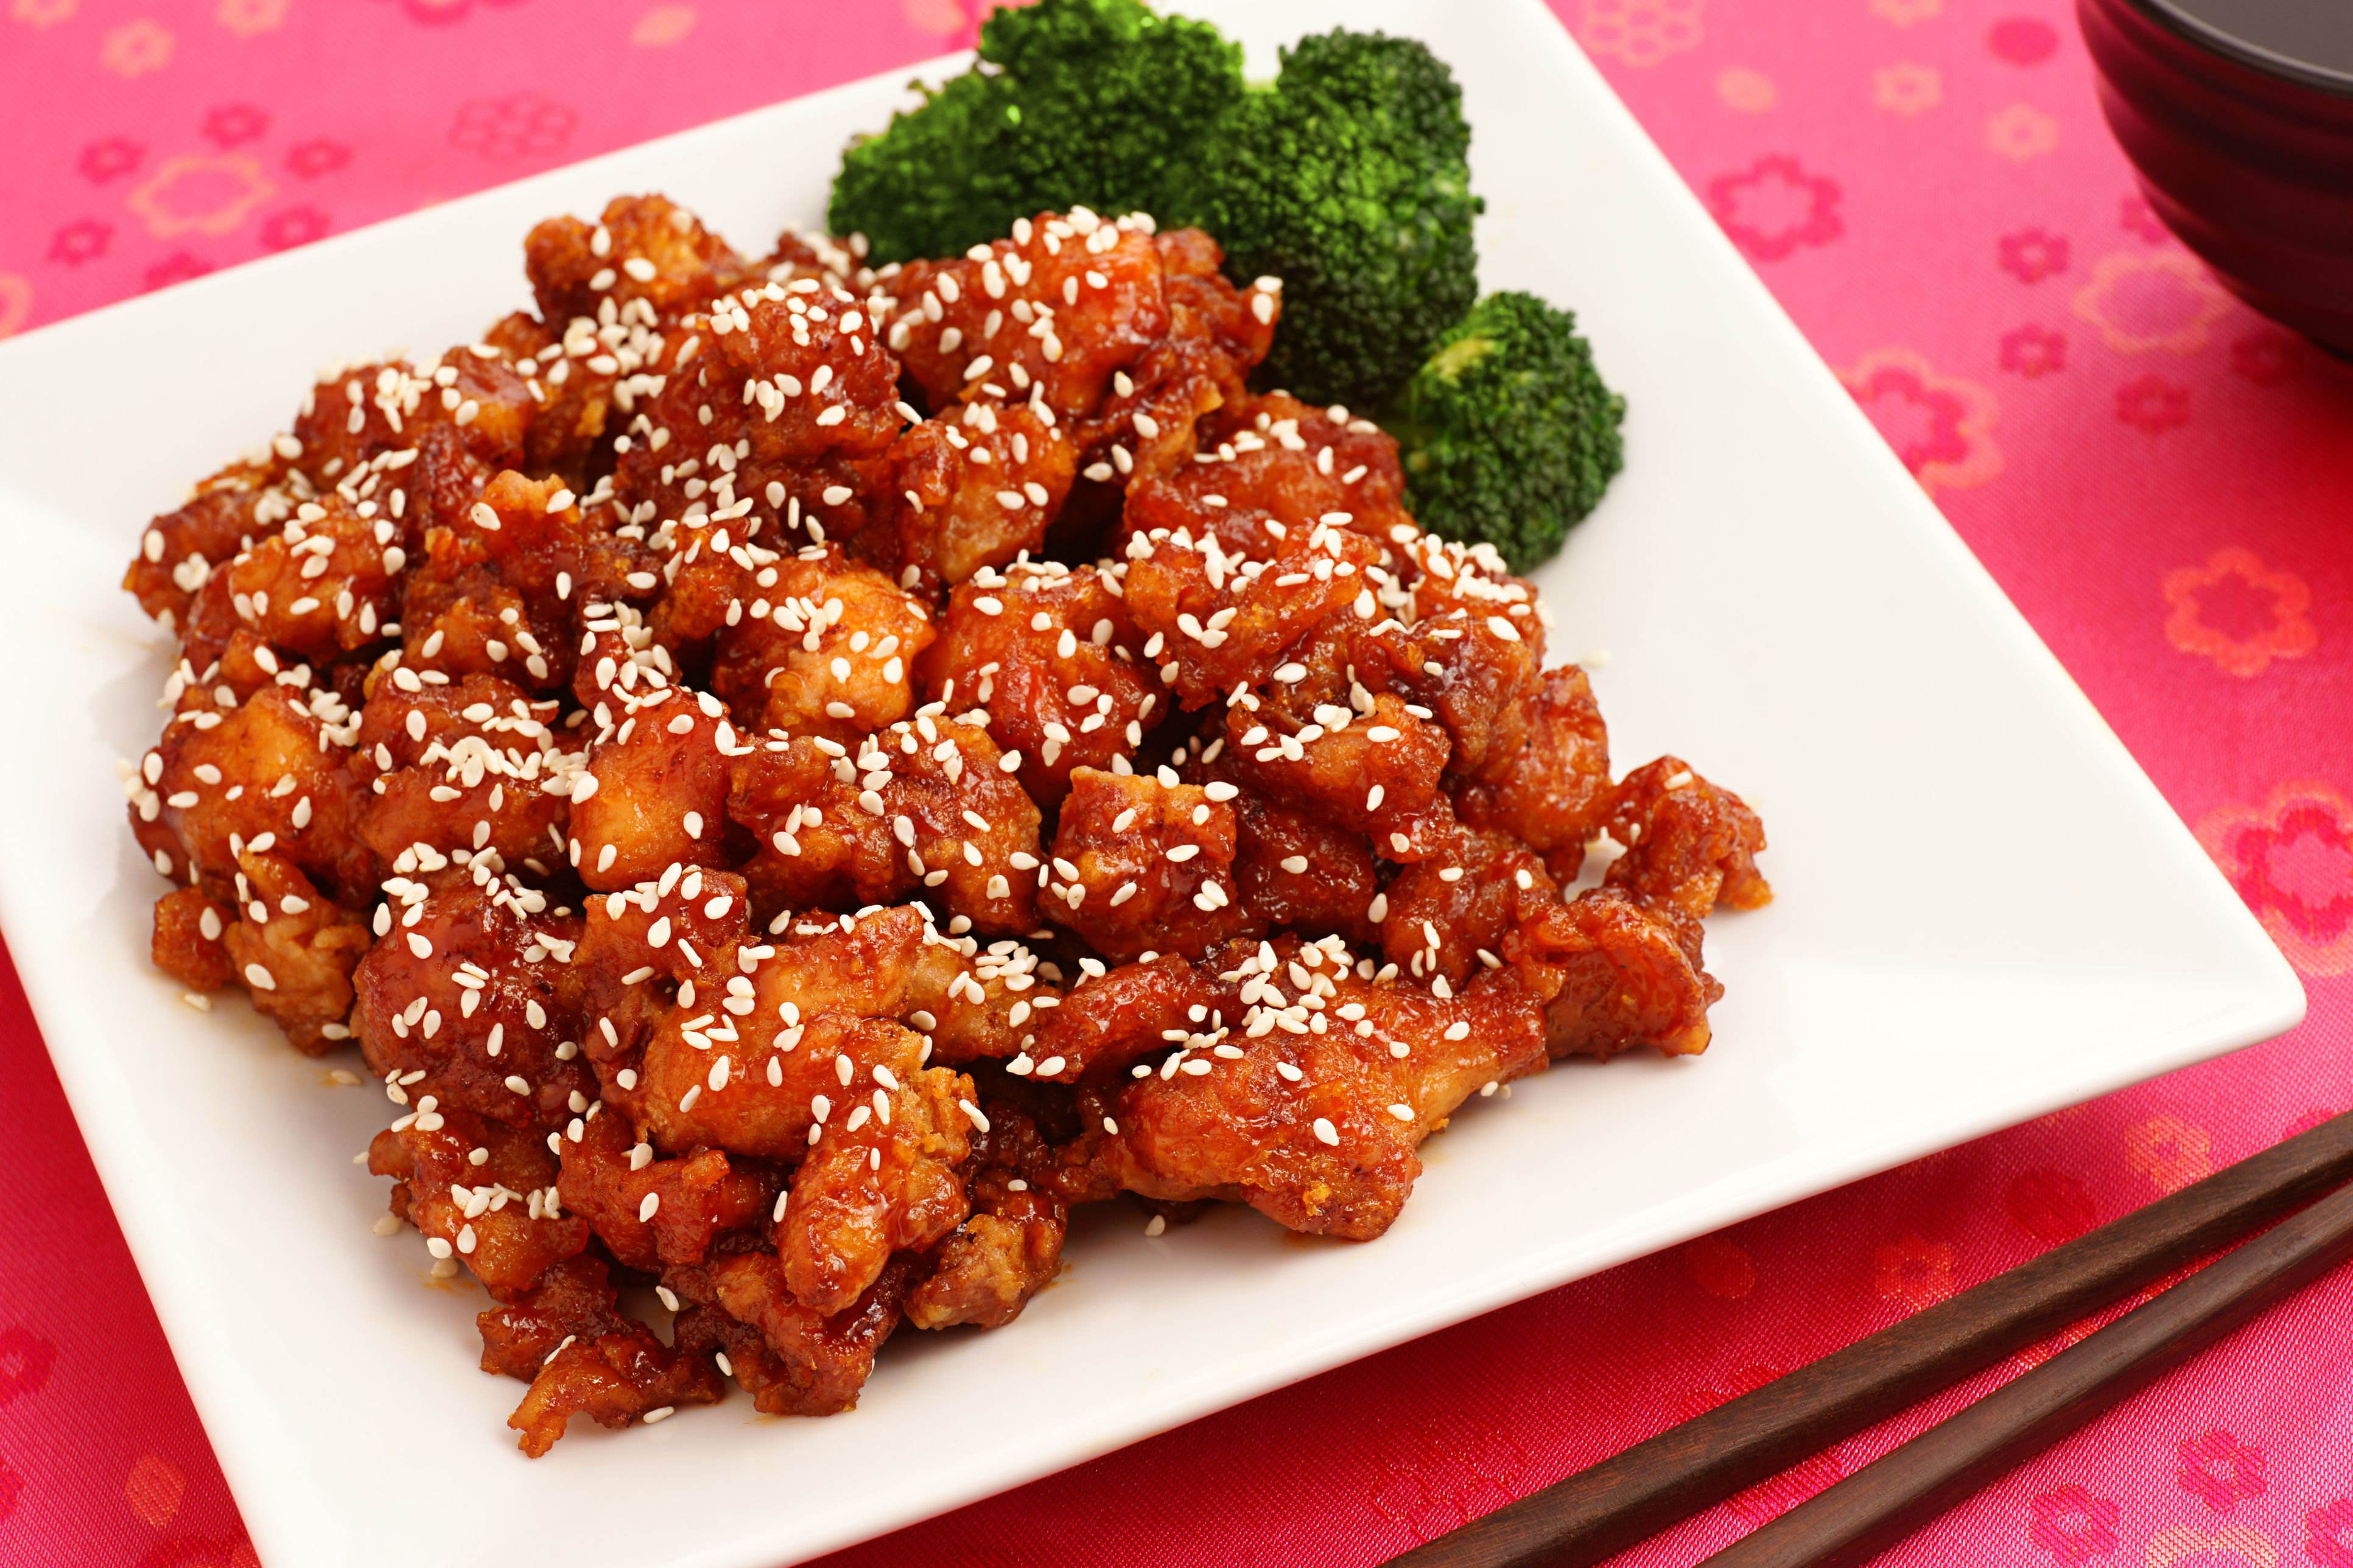 Chinese Sesame Chicken With Garlic And Chili Paste Recipe